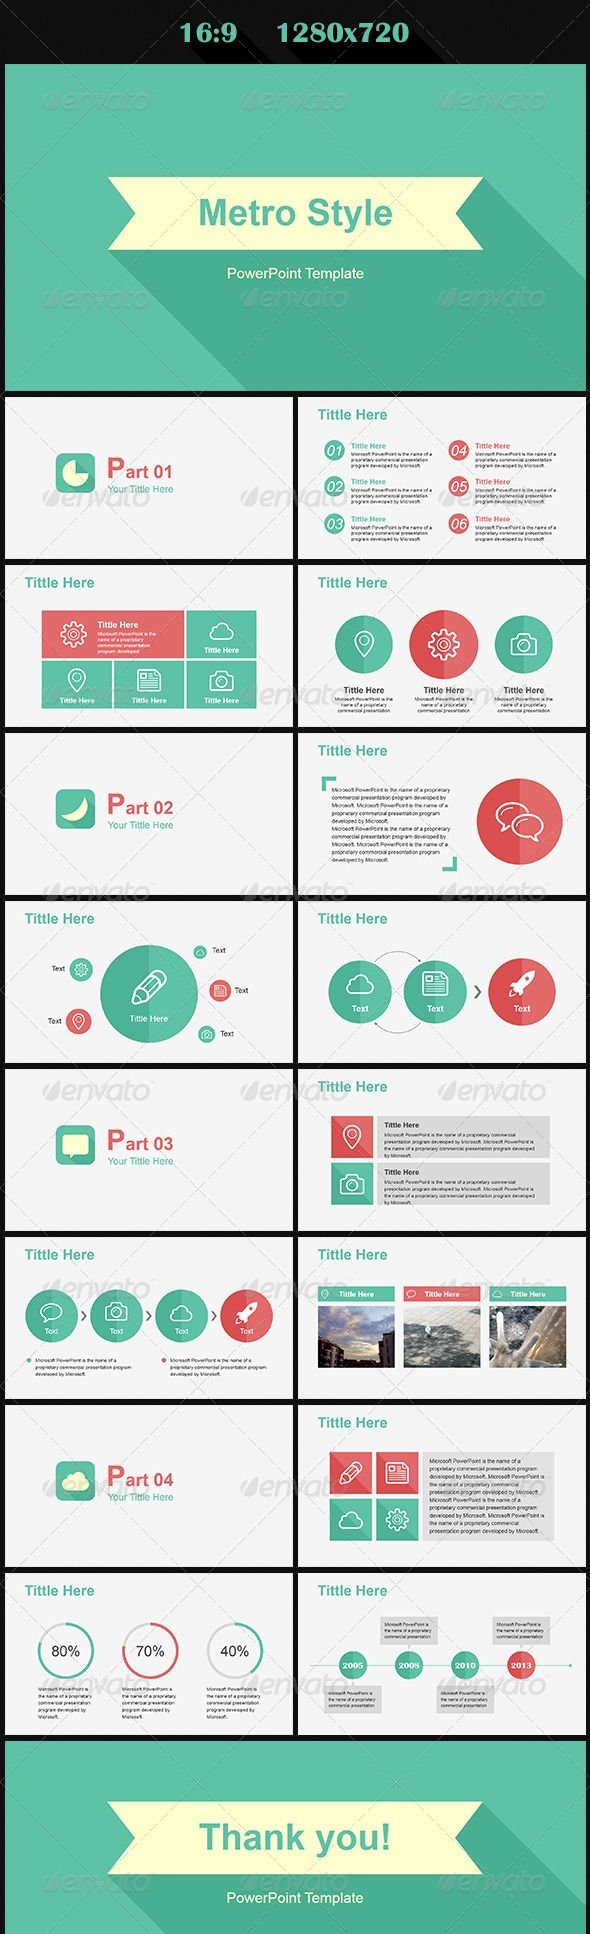 620 best ppt images on pinterest page layout layout design and metro style graphicriver its a modern and fashion powerpoint template with metro style all toneelgroepblik Image collections